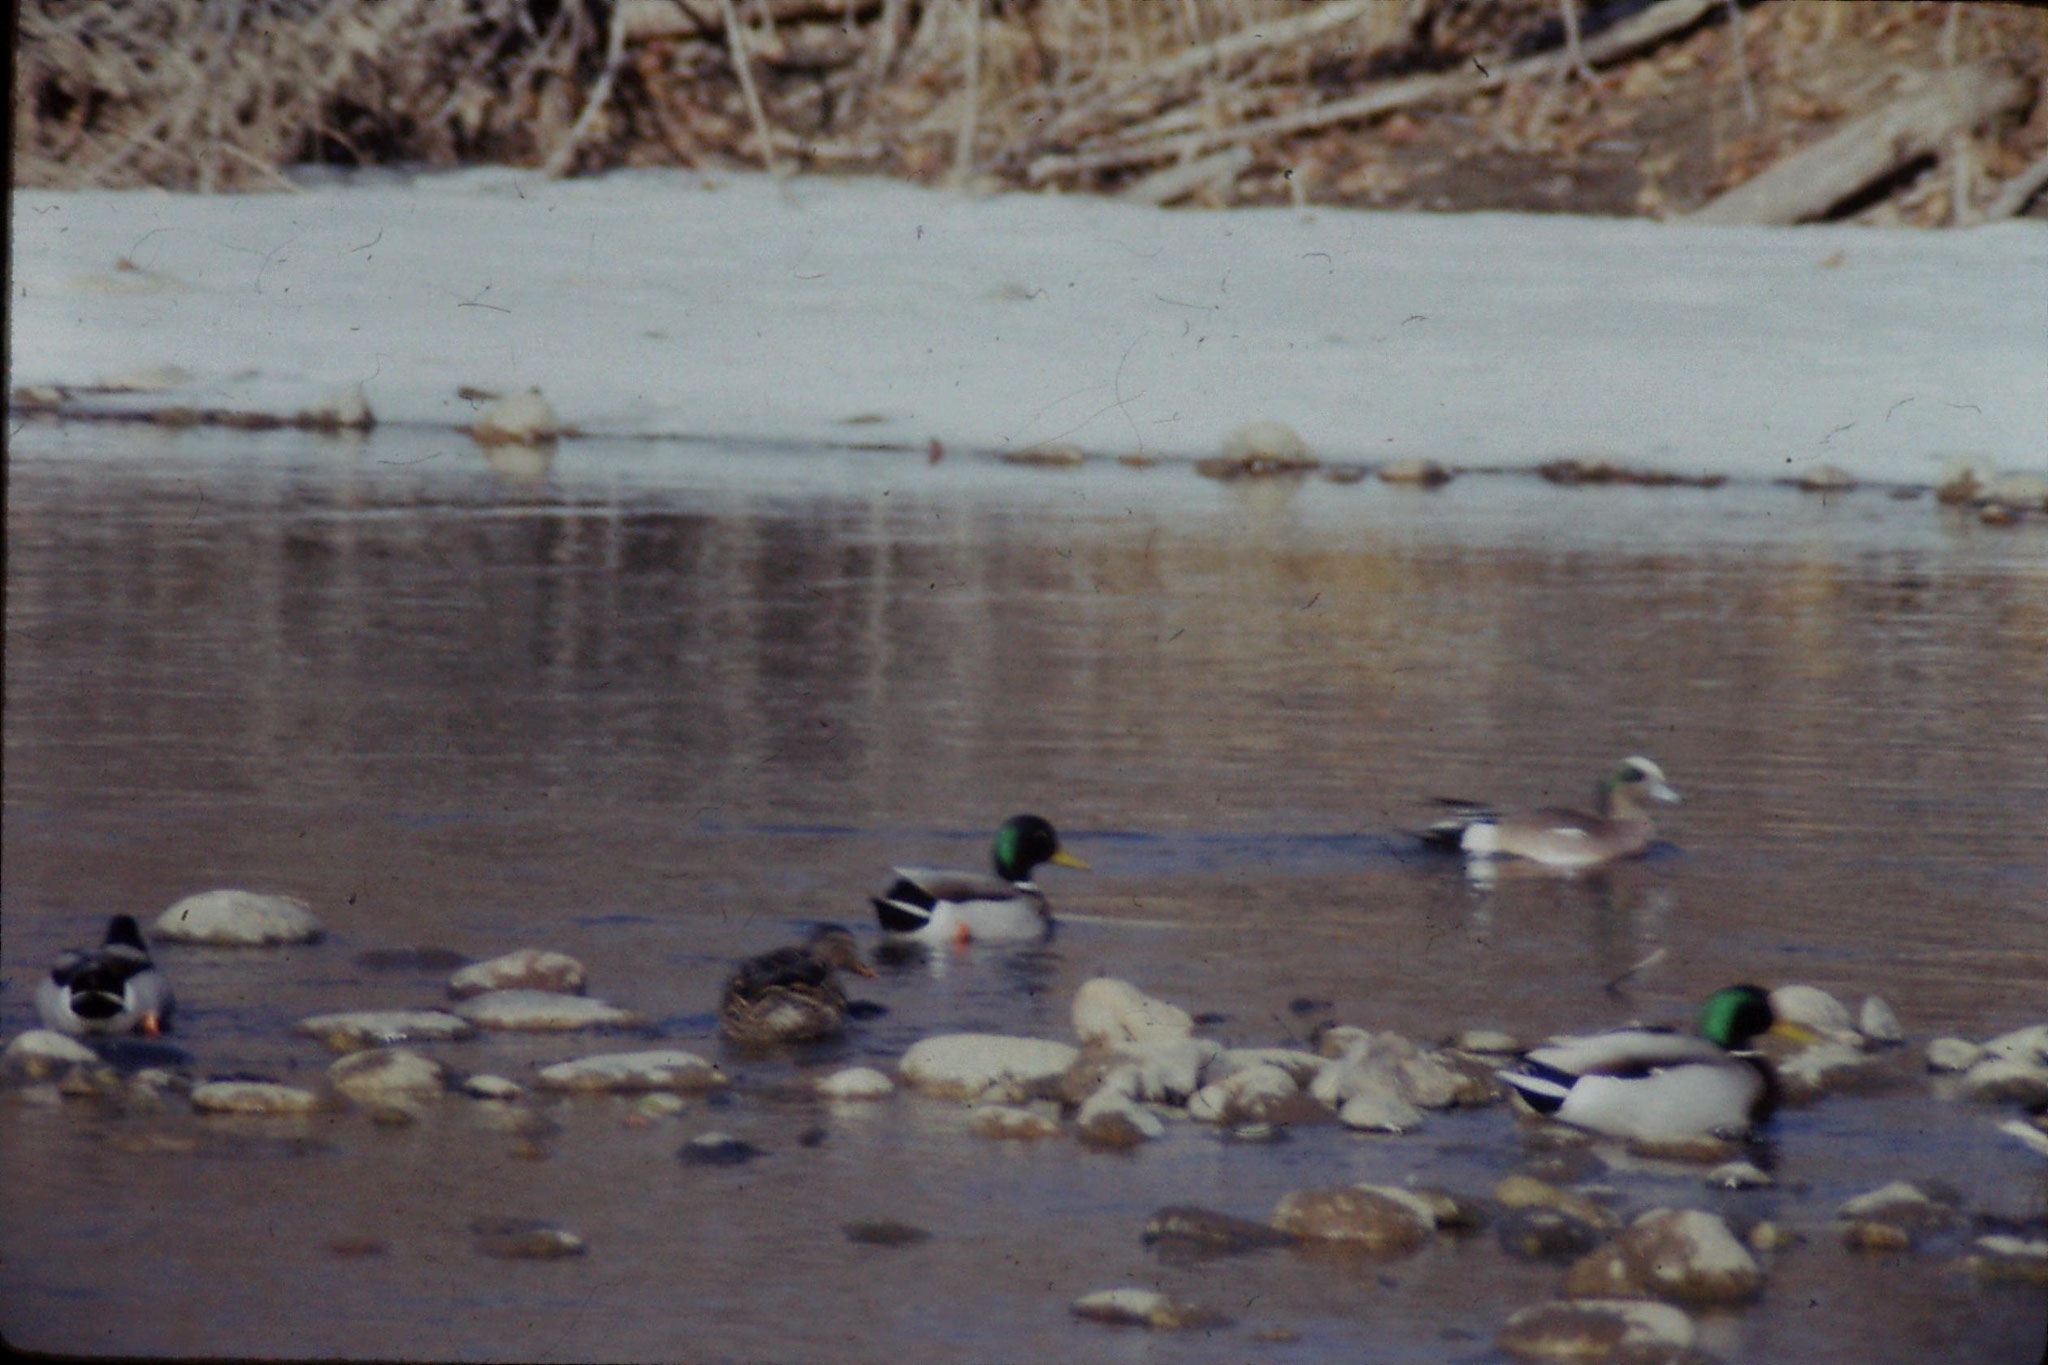 23/1/1991: 27: Mallard and American widgeon